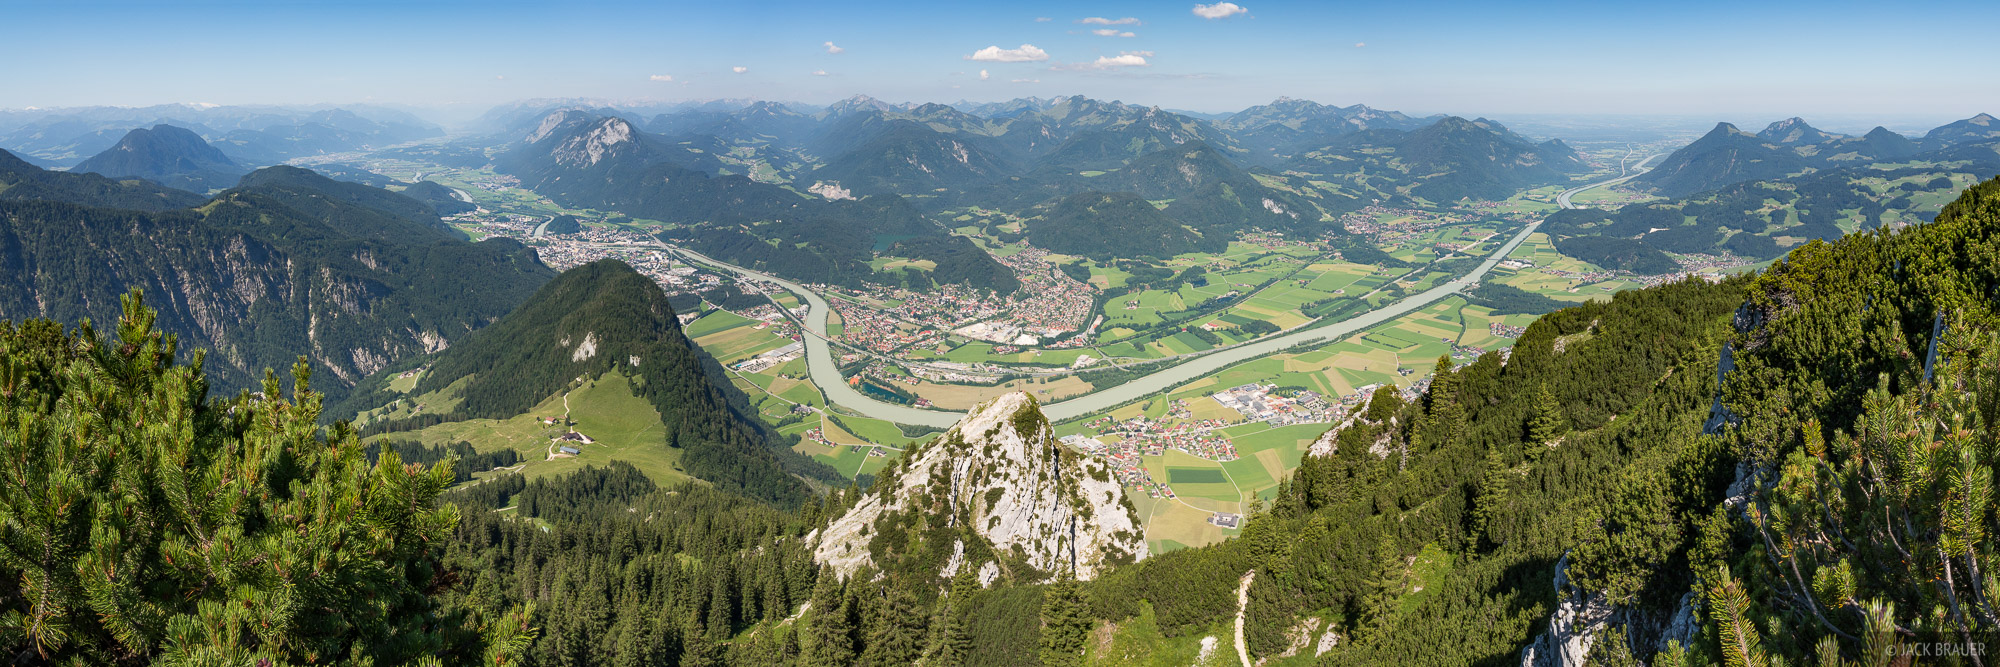 Austria, Kaisergebirge, Kufstein, Peterskopfl, panorama, Alps, photo